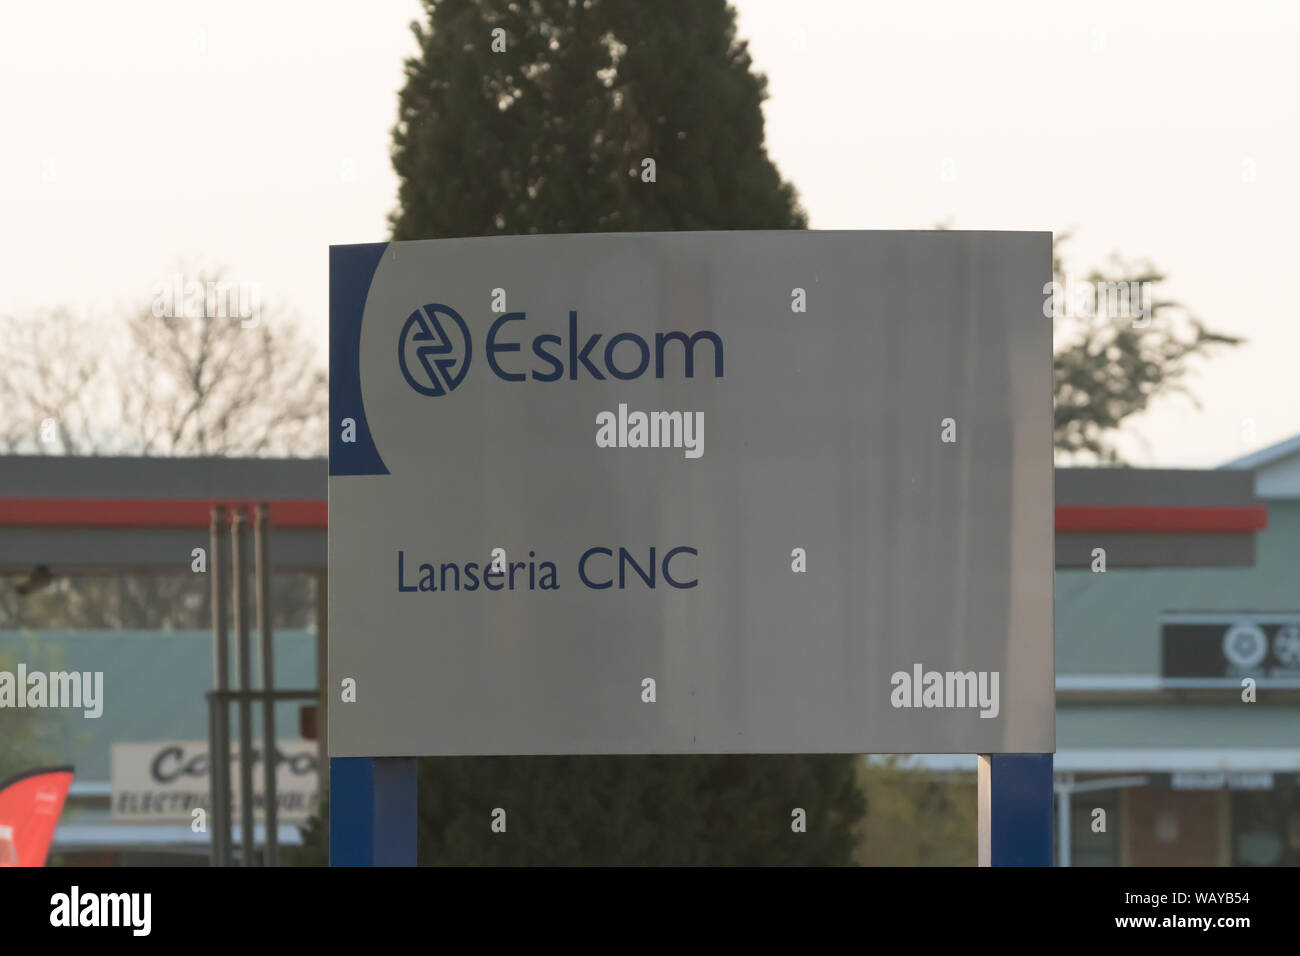 Eskom sign board or signage in the road at Lanseria, Johannesburg, Gauteng, South Africa Stock Photo